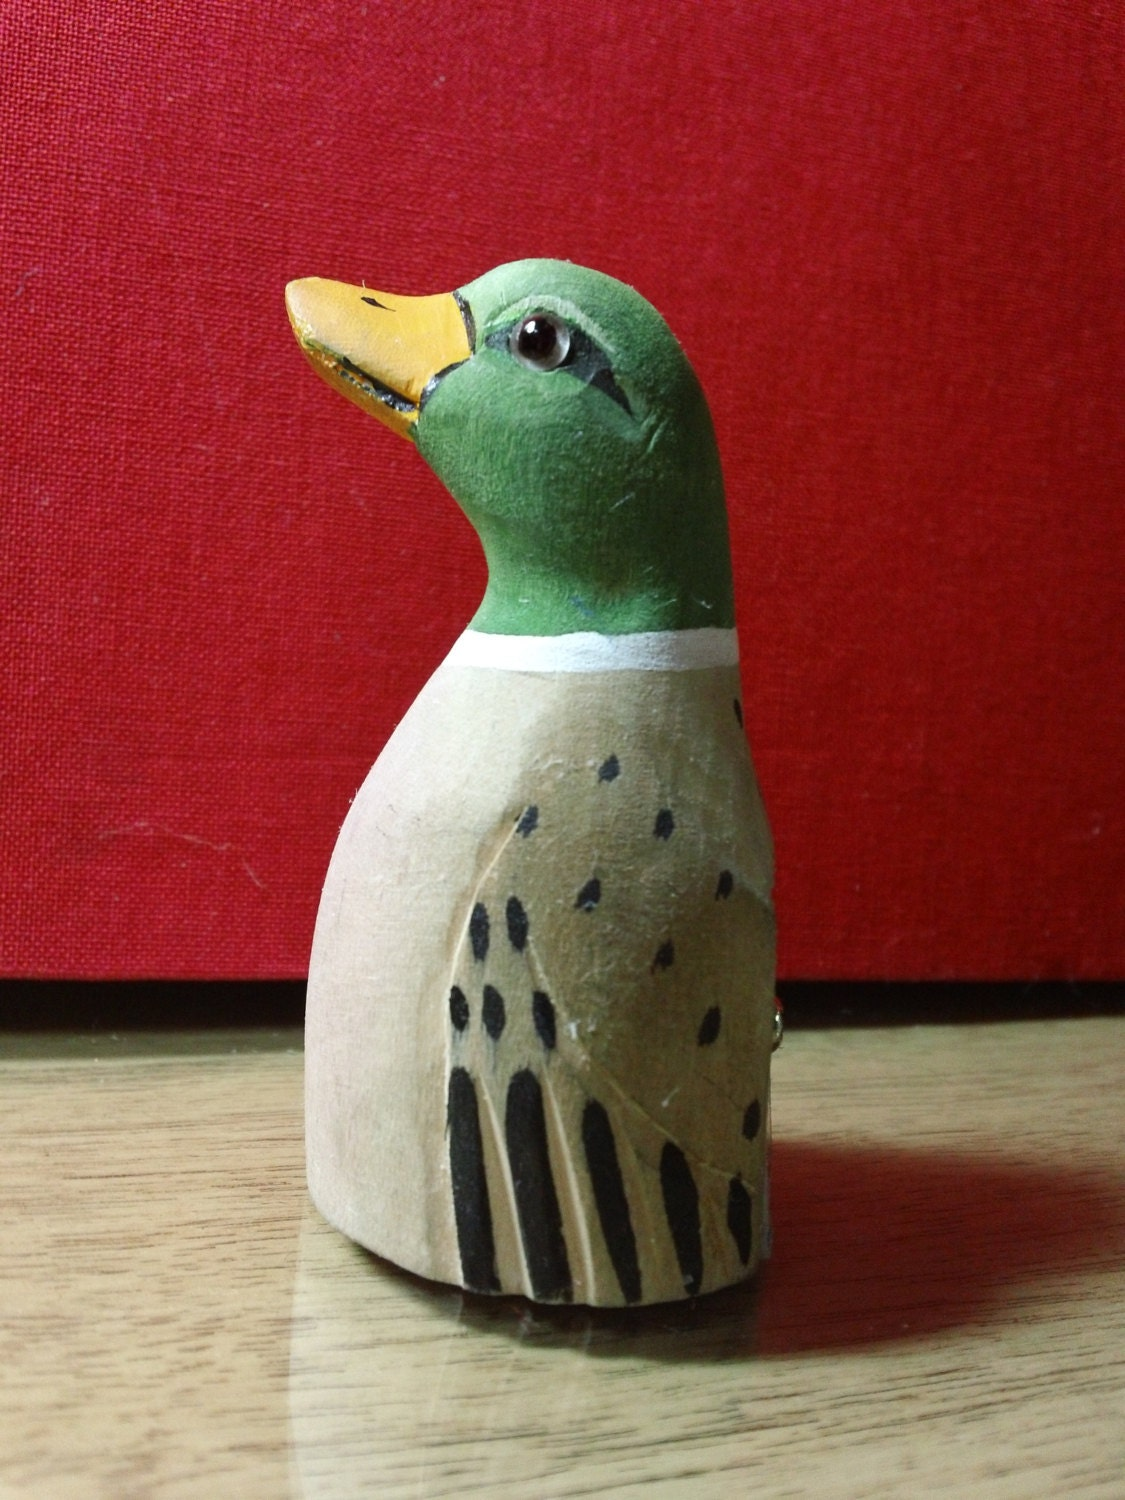 Carved wood mallard duck pencil sharpener from